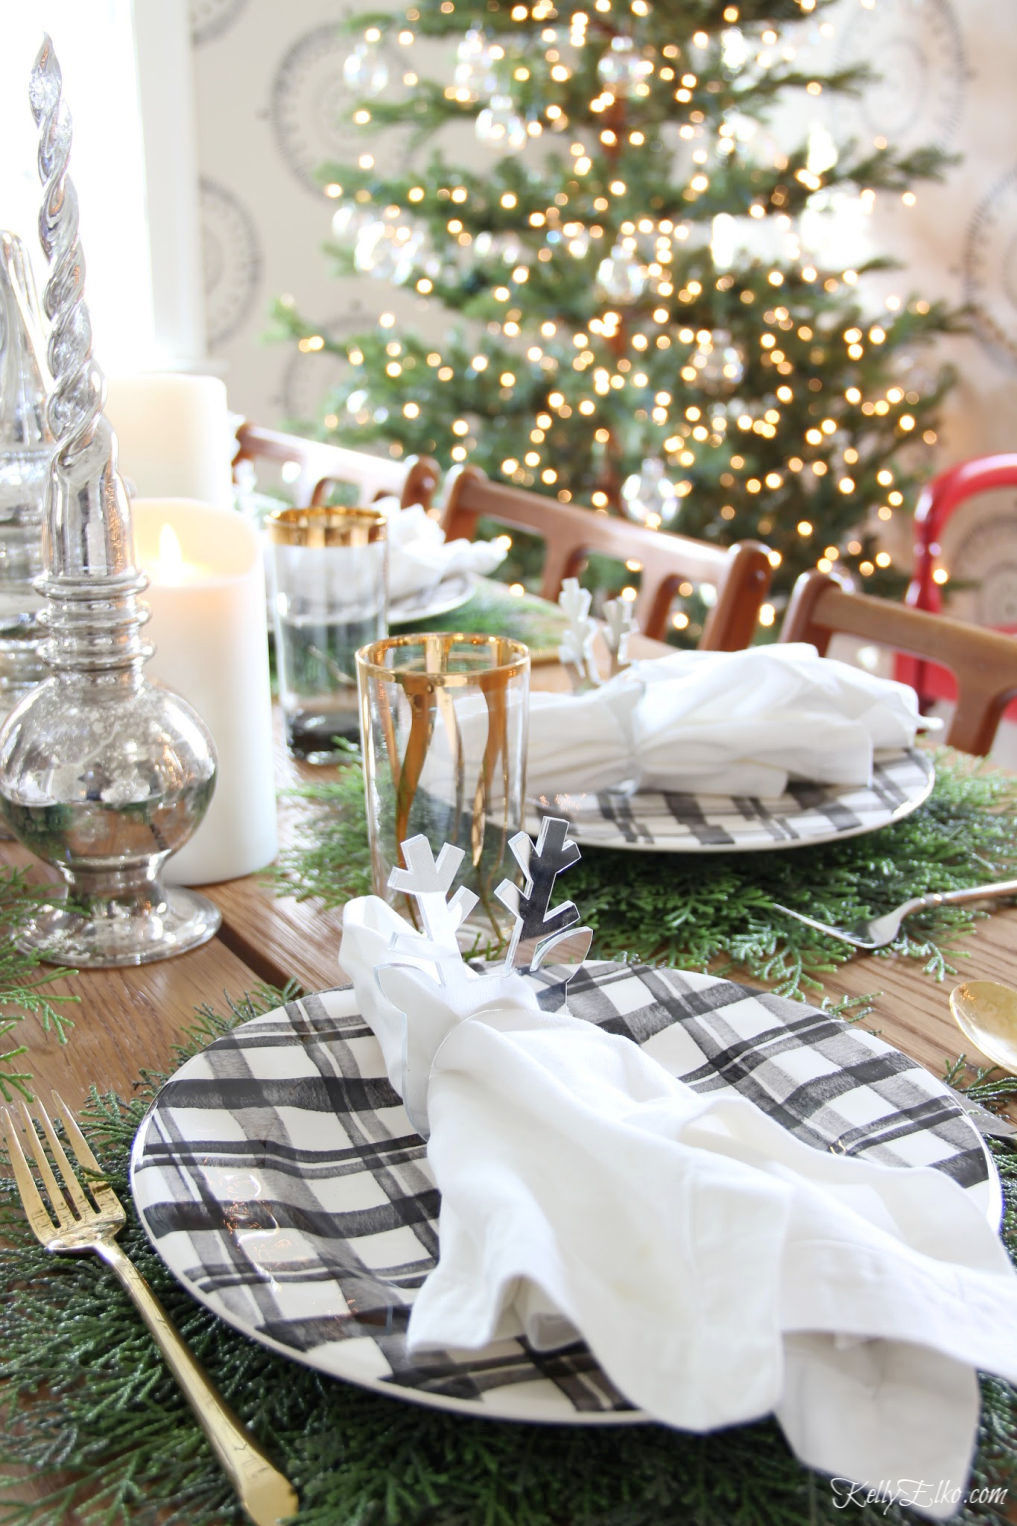 Beautiful Christmas Home Tour - love the plaid plates on cedar placemats kellyelko.com #christmas #christmasdecor #christmasdecorating #christmashome #christmastour #diychristmas #christmasideas #christmasmantel #christmastree #christmasornaments #vintagechristmas #farmhousechristmas #colorfulchristmas #creativechristmas #kellyelko #christmastable #christmascenterpiece #plaid #tablesetting #tablescape